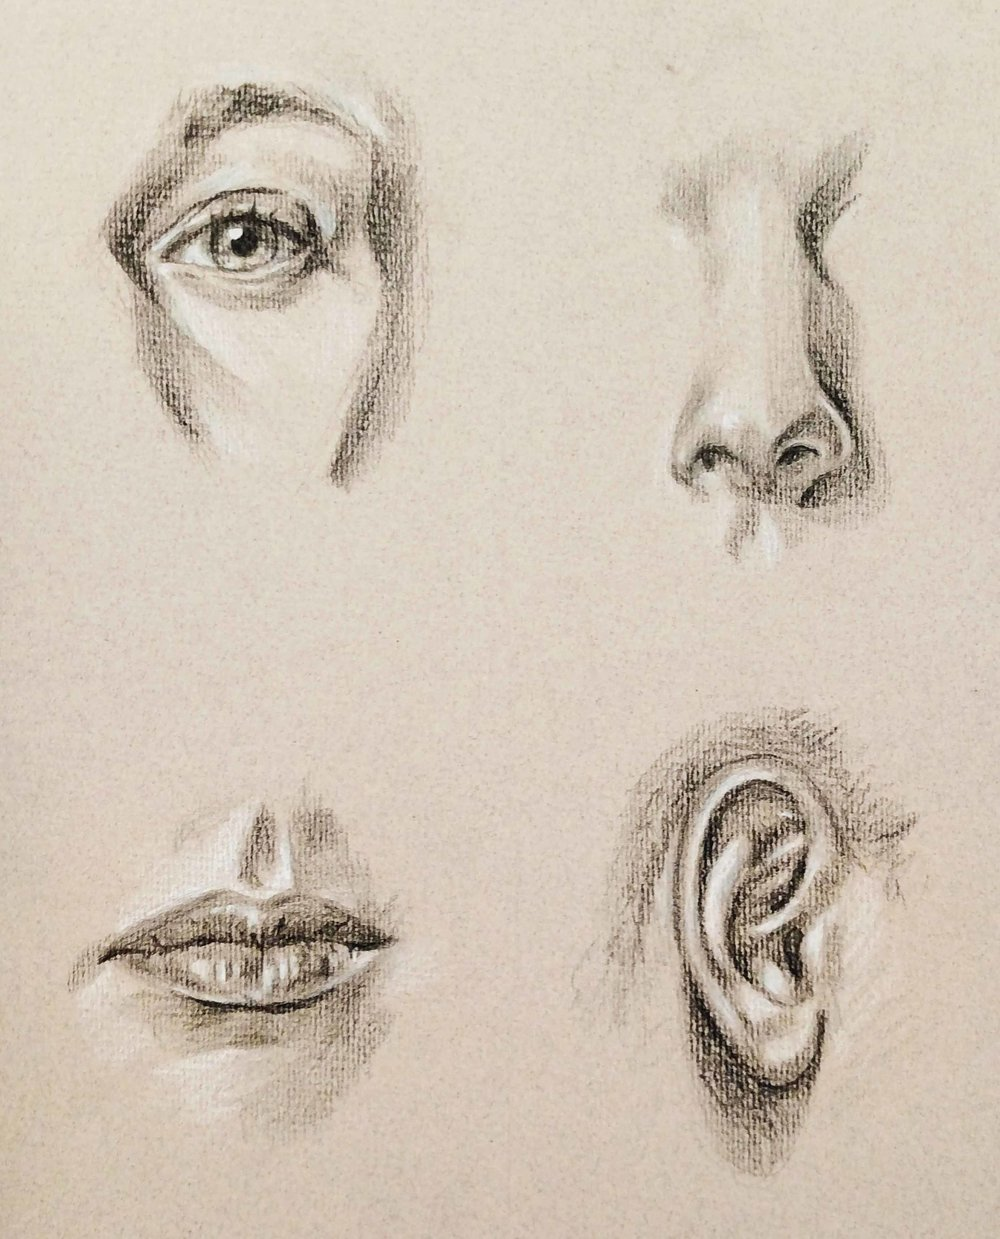 Life Drawing  Eyes, Nose, Ears and Mouth Studies  Direct Observational 2017  Charcoal on Toned Paper